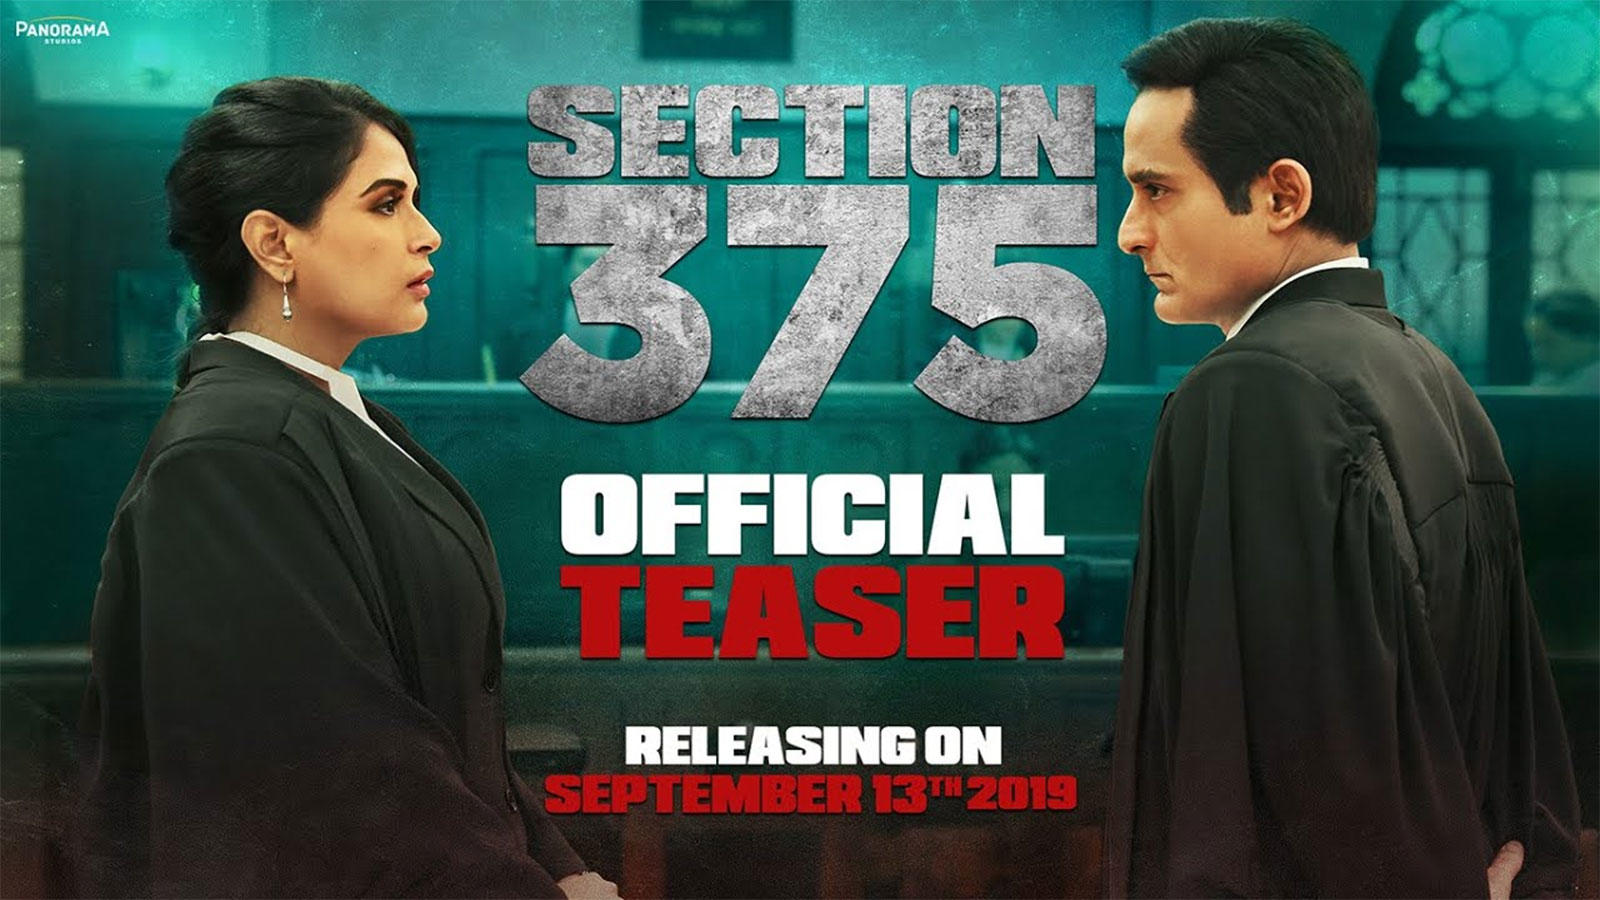 Section 375 - Official Teaser